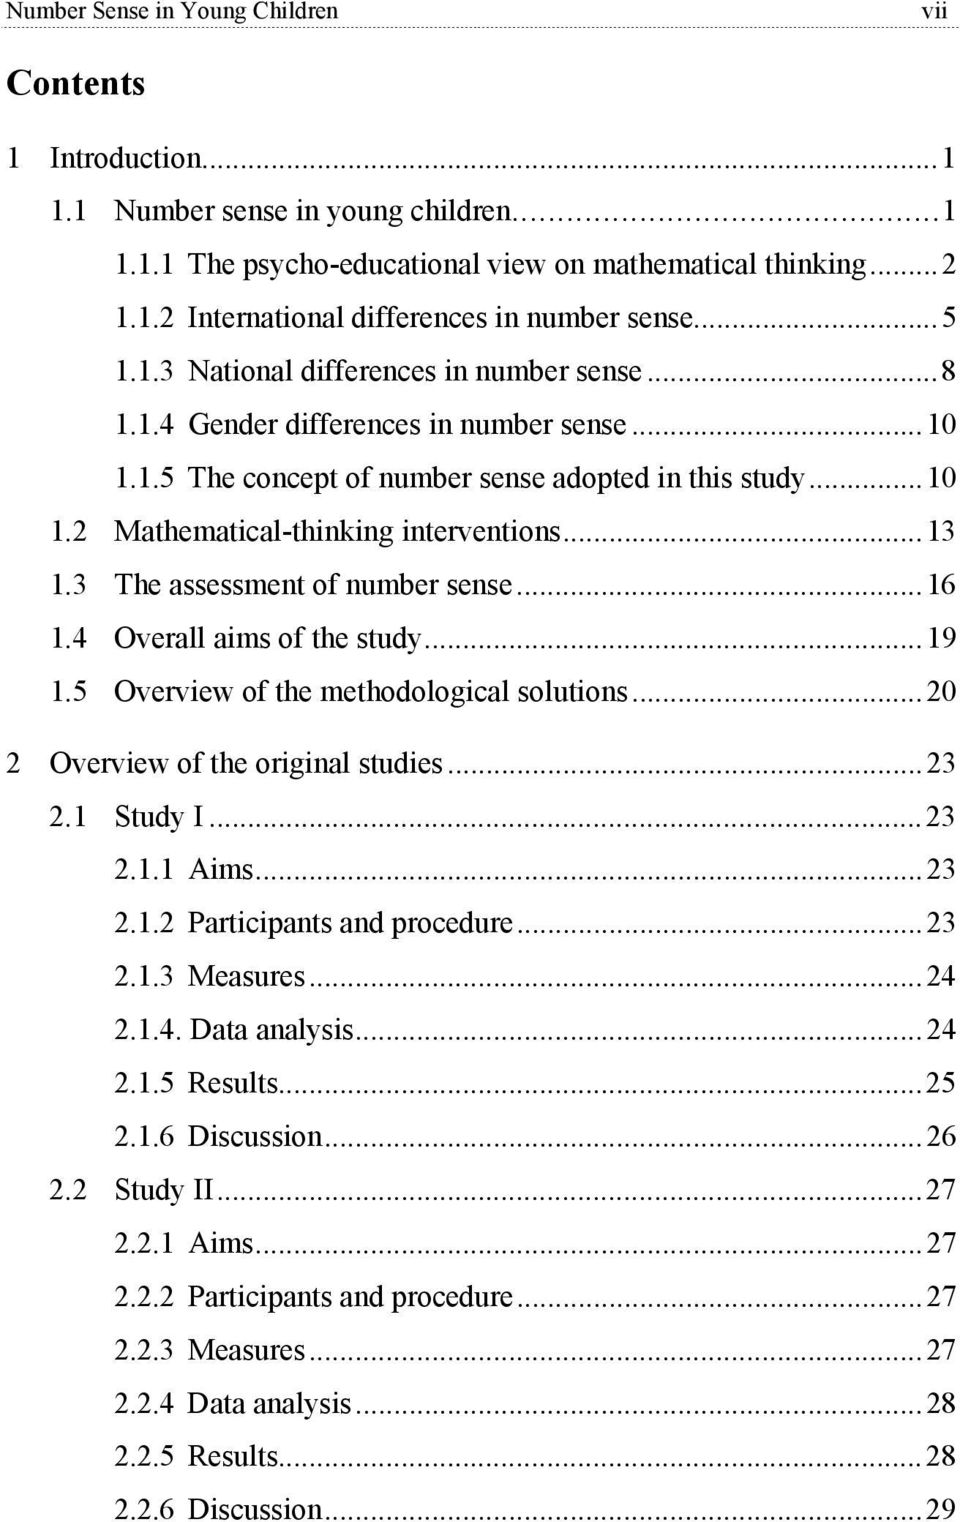 ..13 1.3 The assessment of number sense...16 1.4 Overall aims of the study...19 1.5 Overview of the methodological solutions...20 2 Overview of the original studies...23 2.1 Study I...23 2.1.1 Aims.